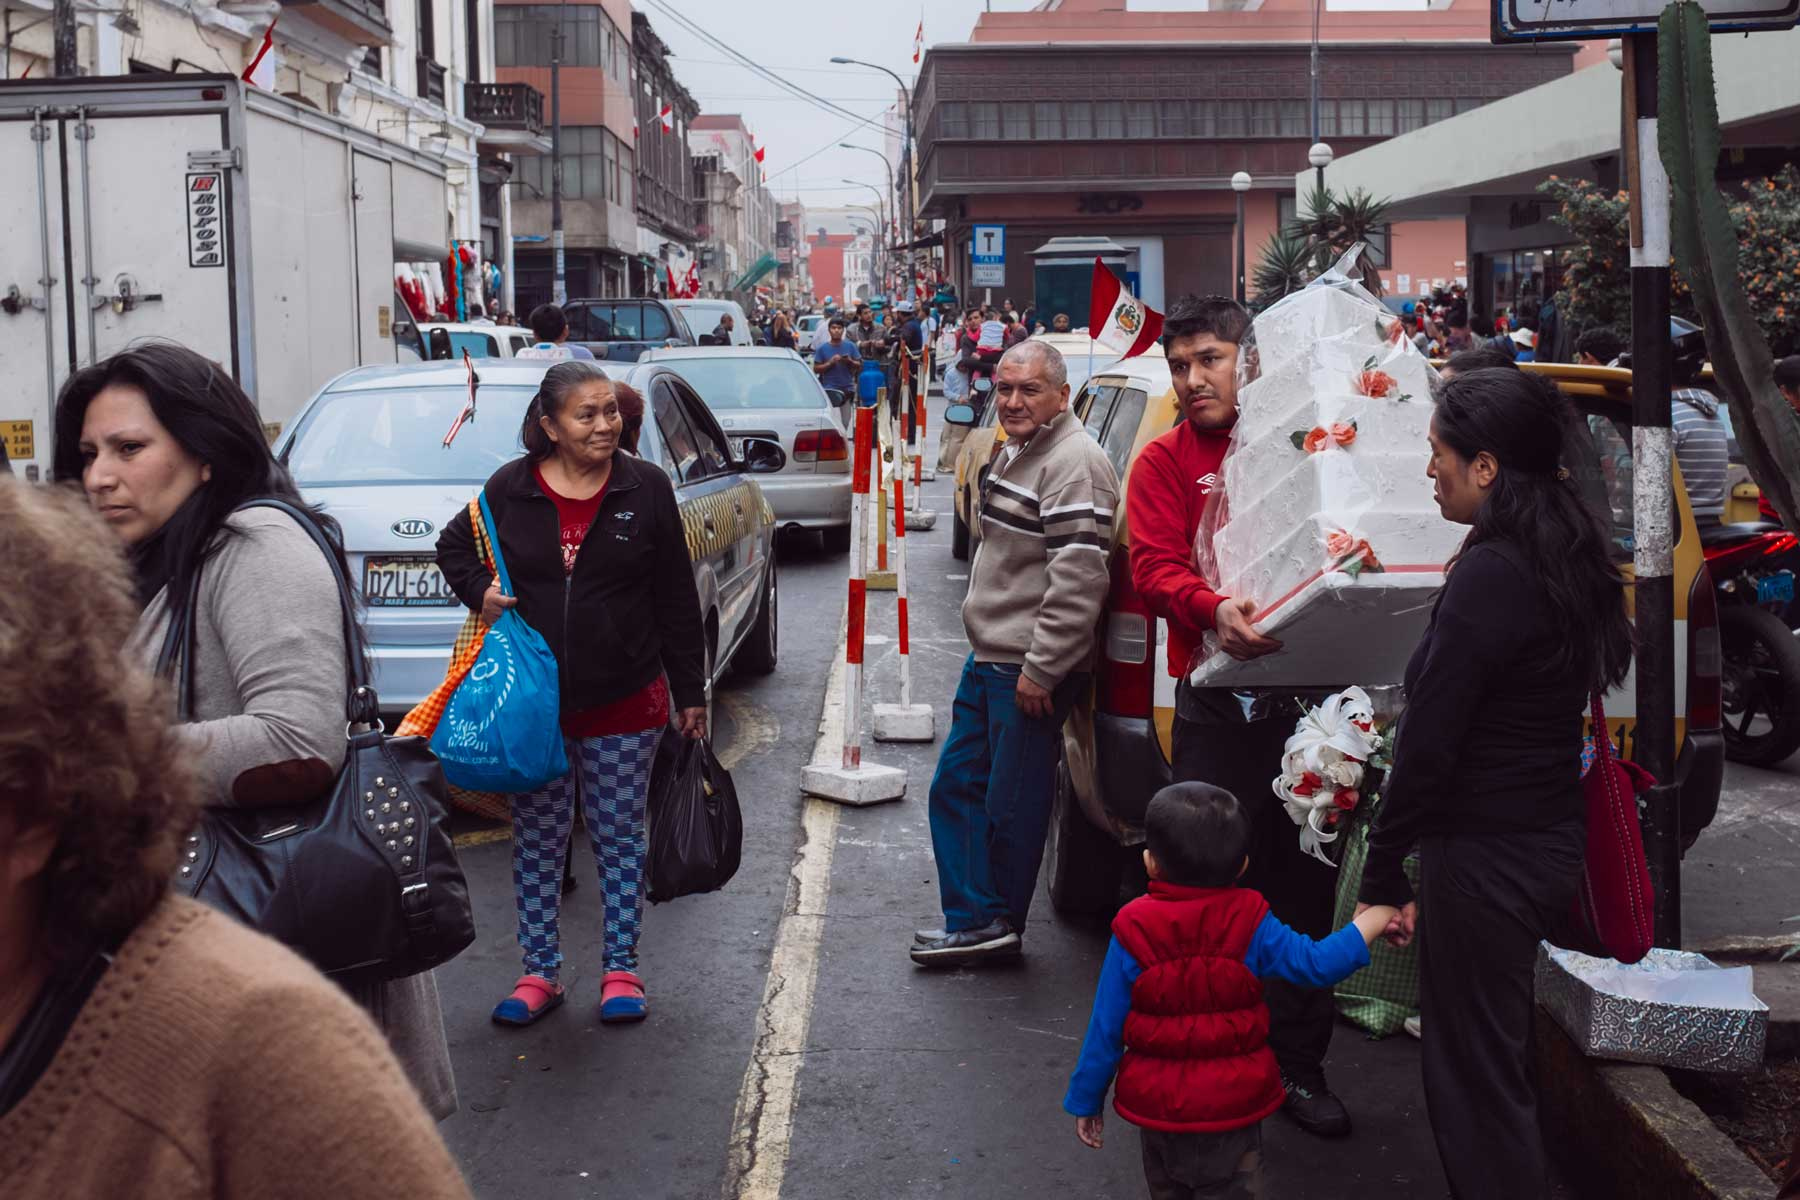 Friends and family in the busy market district of downtown Lima.